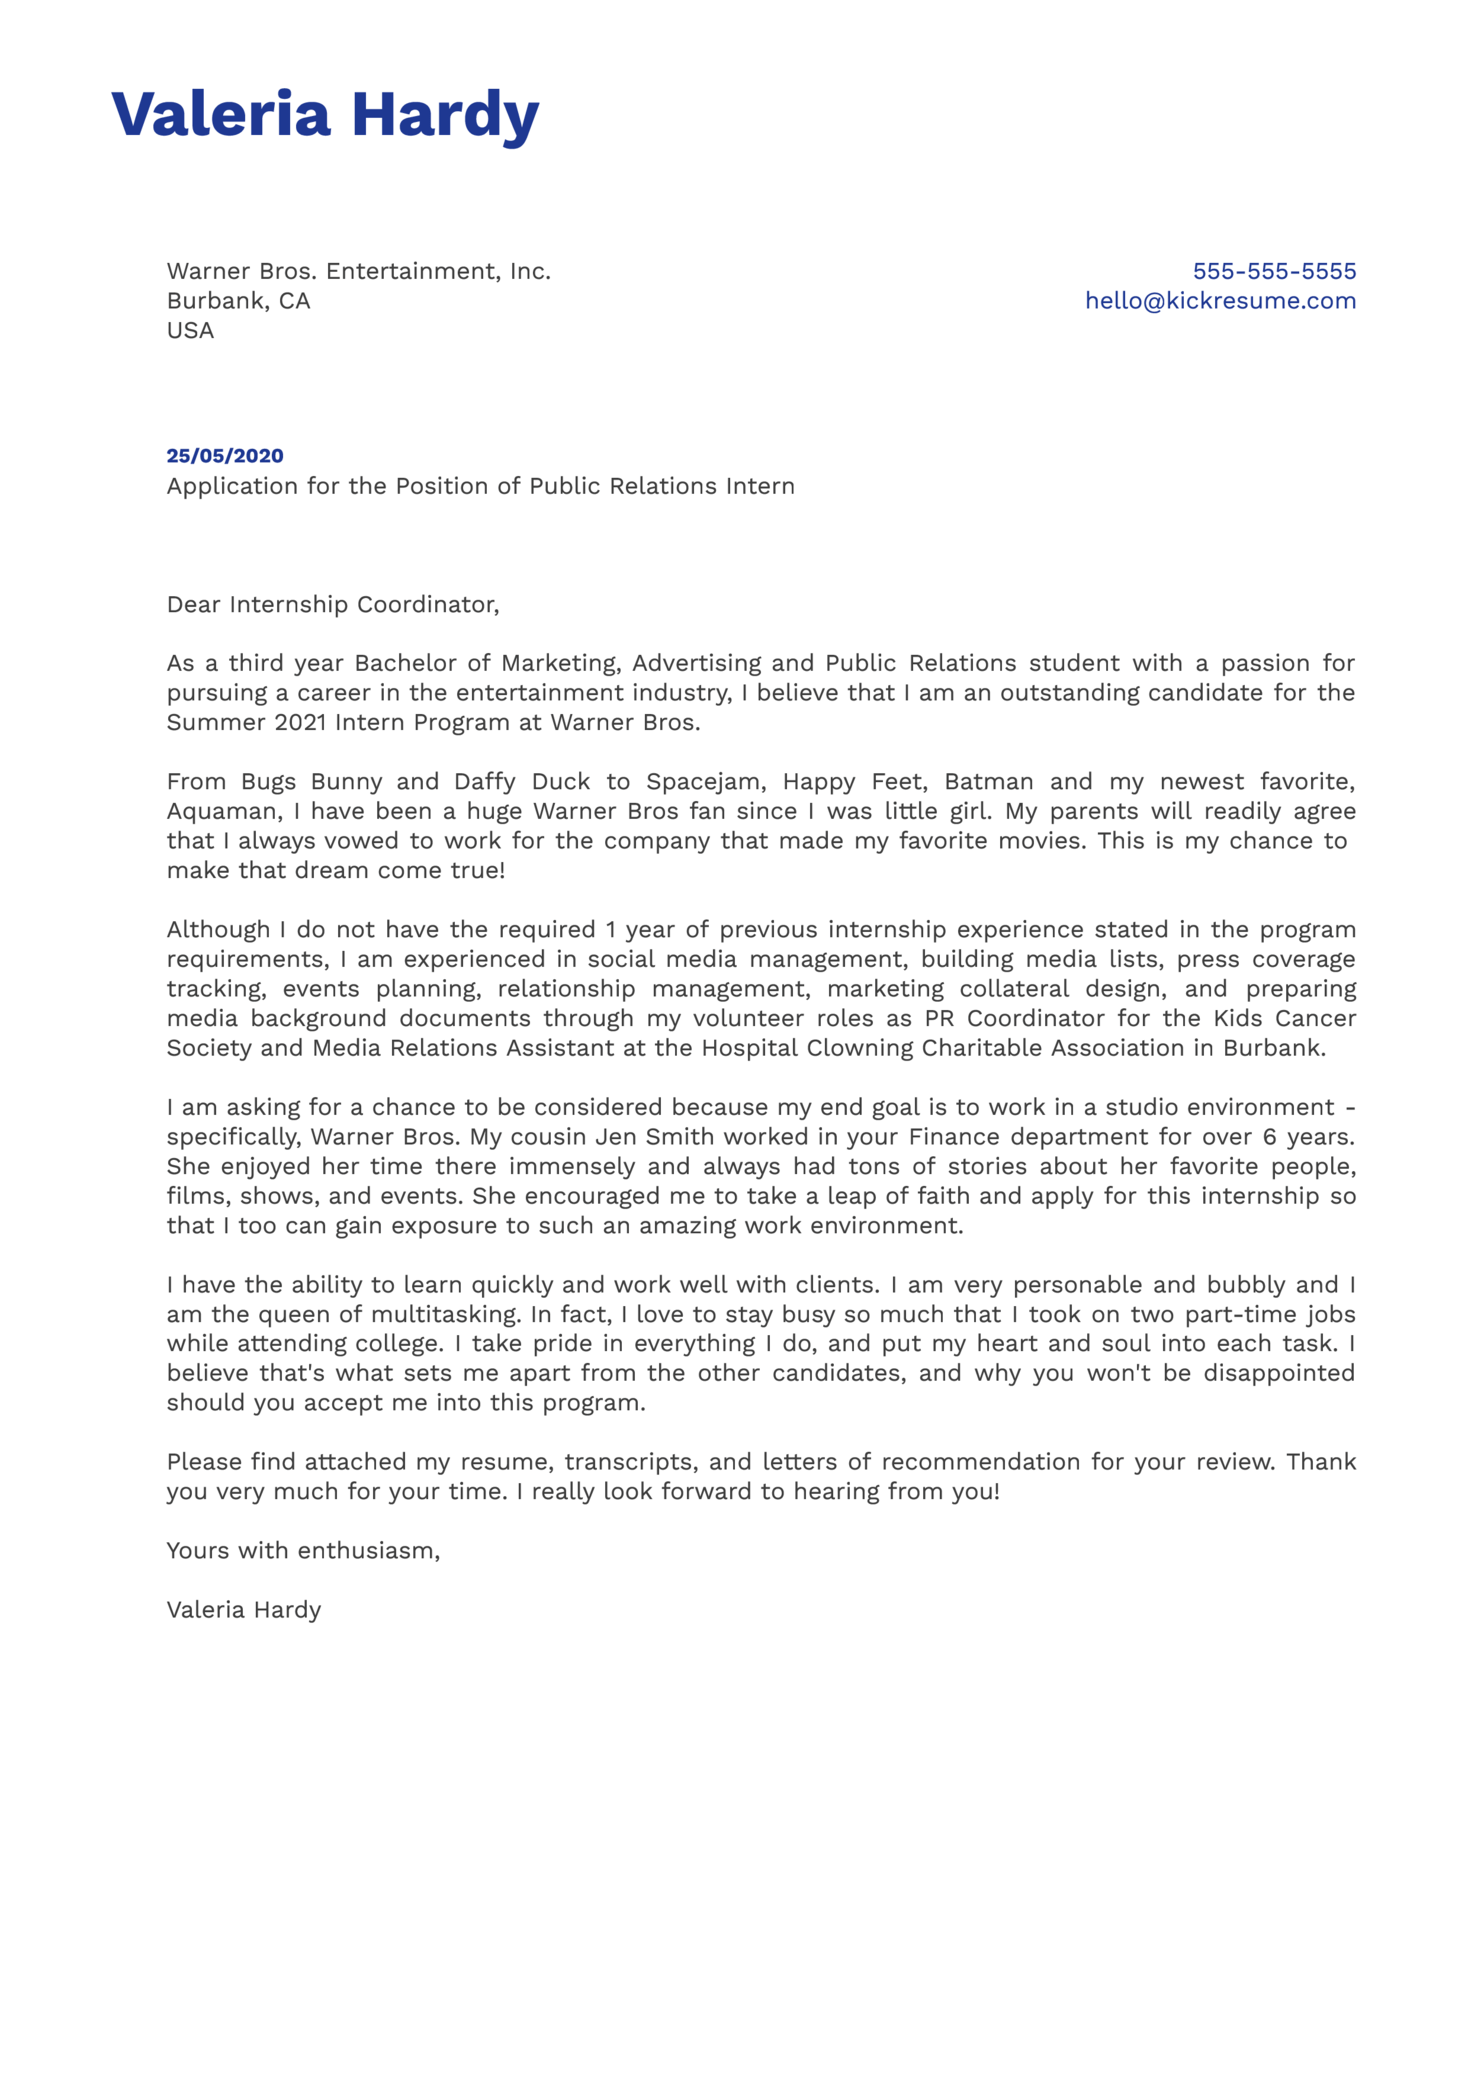 Warner Bros. Public Relations Intern Cover Letter Example